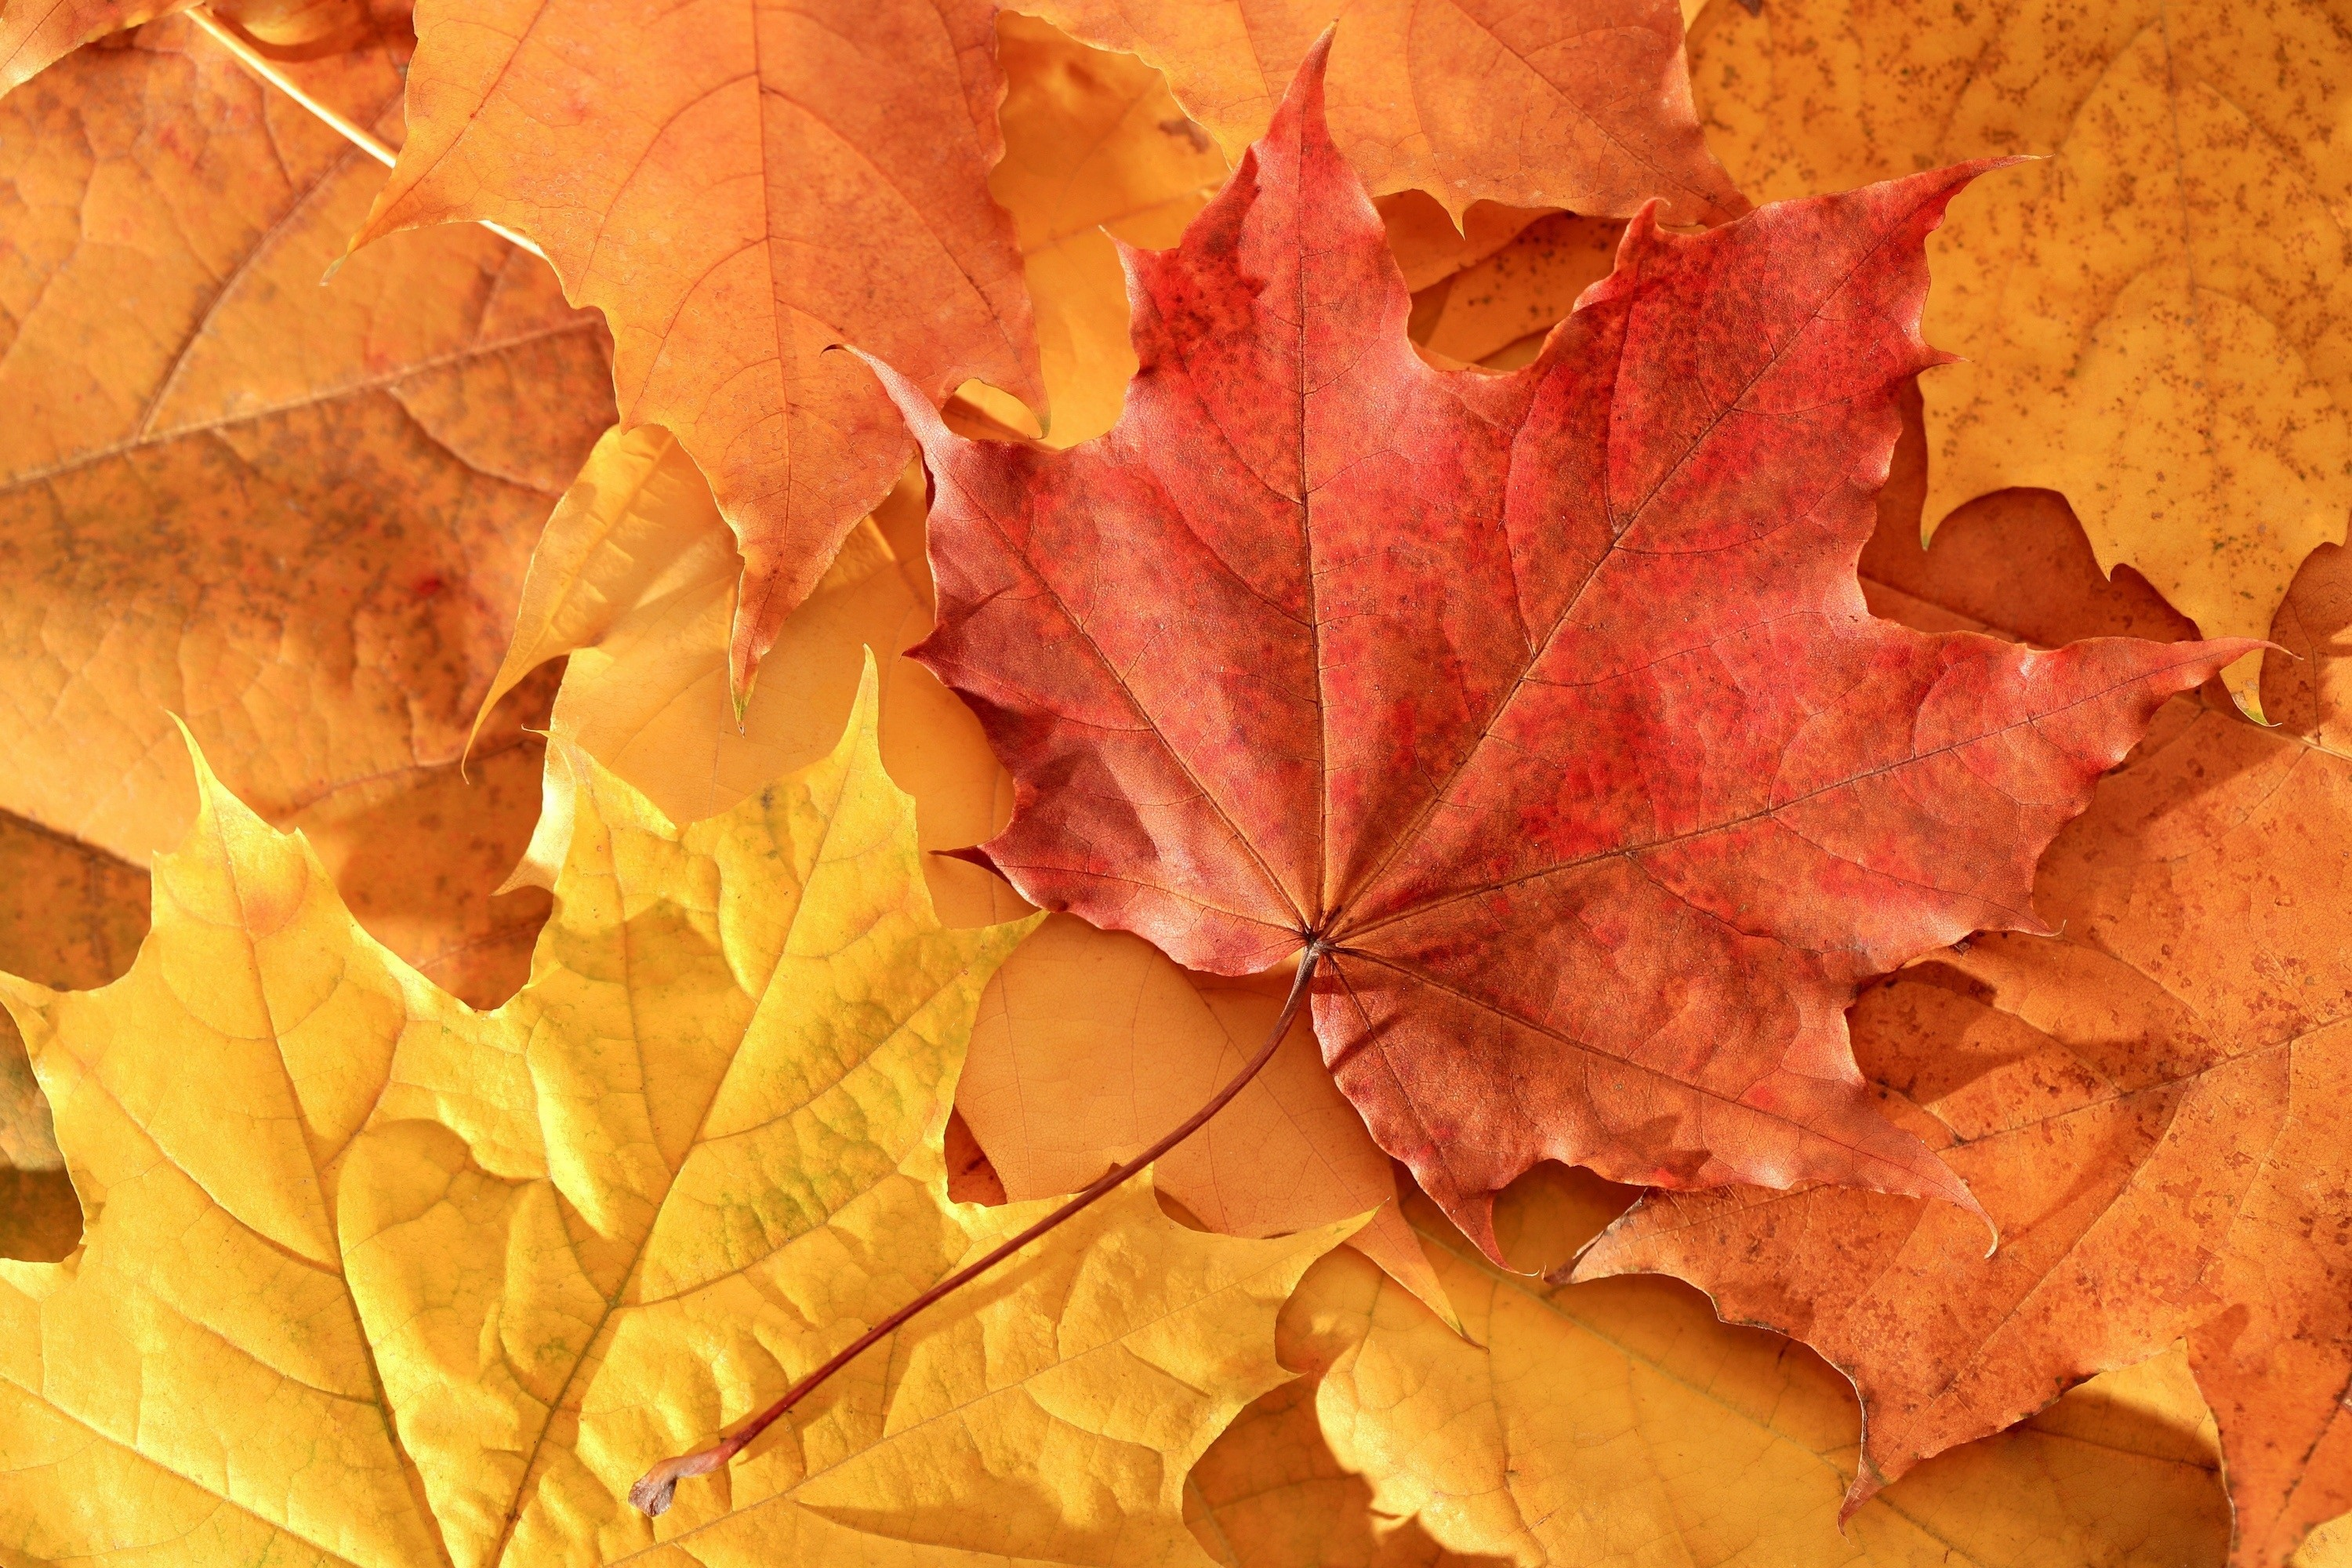 Drop Of Water Falling From A Leaf Wallpaper Autumn Leaf Wallpaper 68 Images